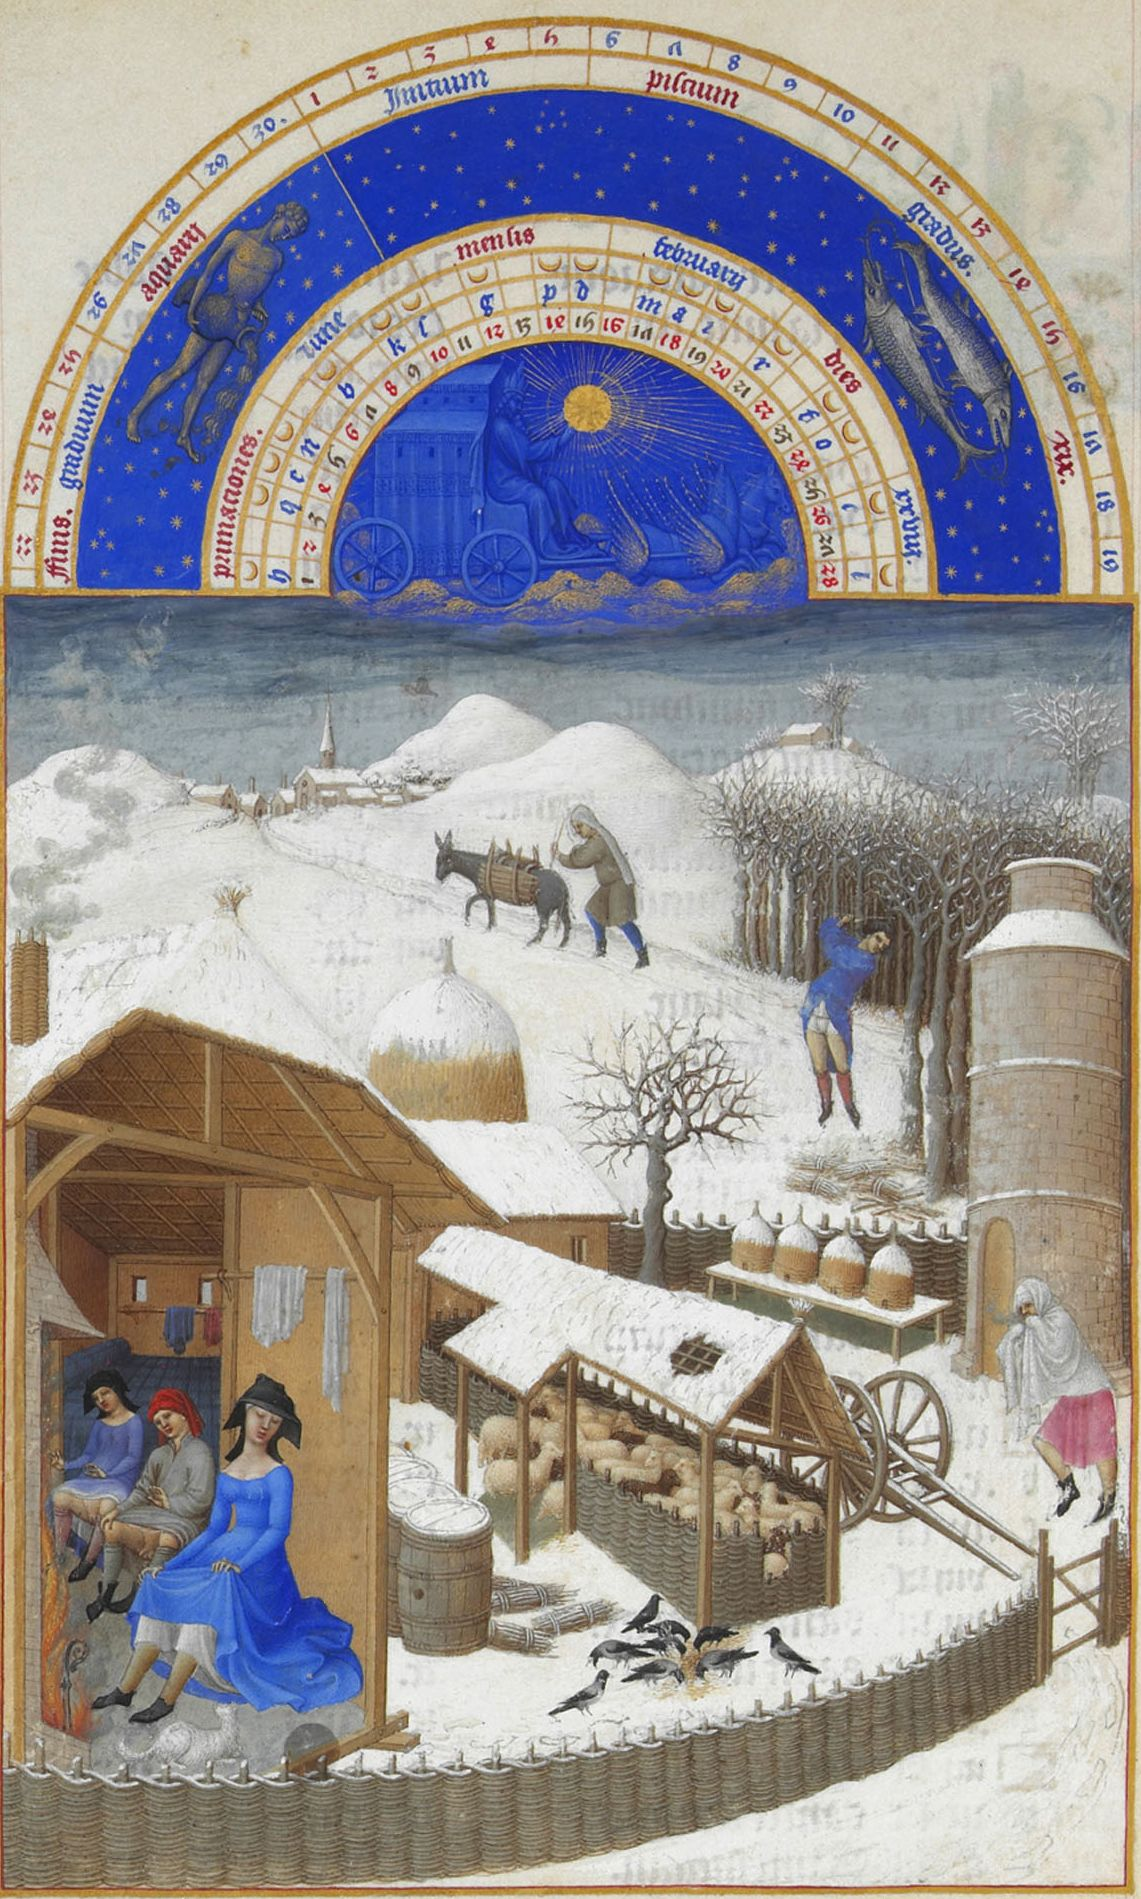 https://upload.wikimedia.org/wikipedia/commons/0/02/Les_Tr%C3%A8s_Riches_Heures_du_duc_de_Berry_f%C3%A9vrier.jpg